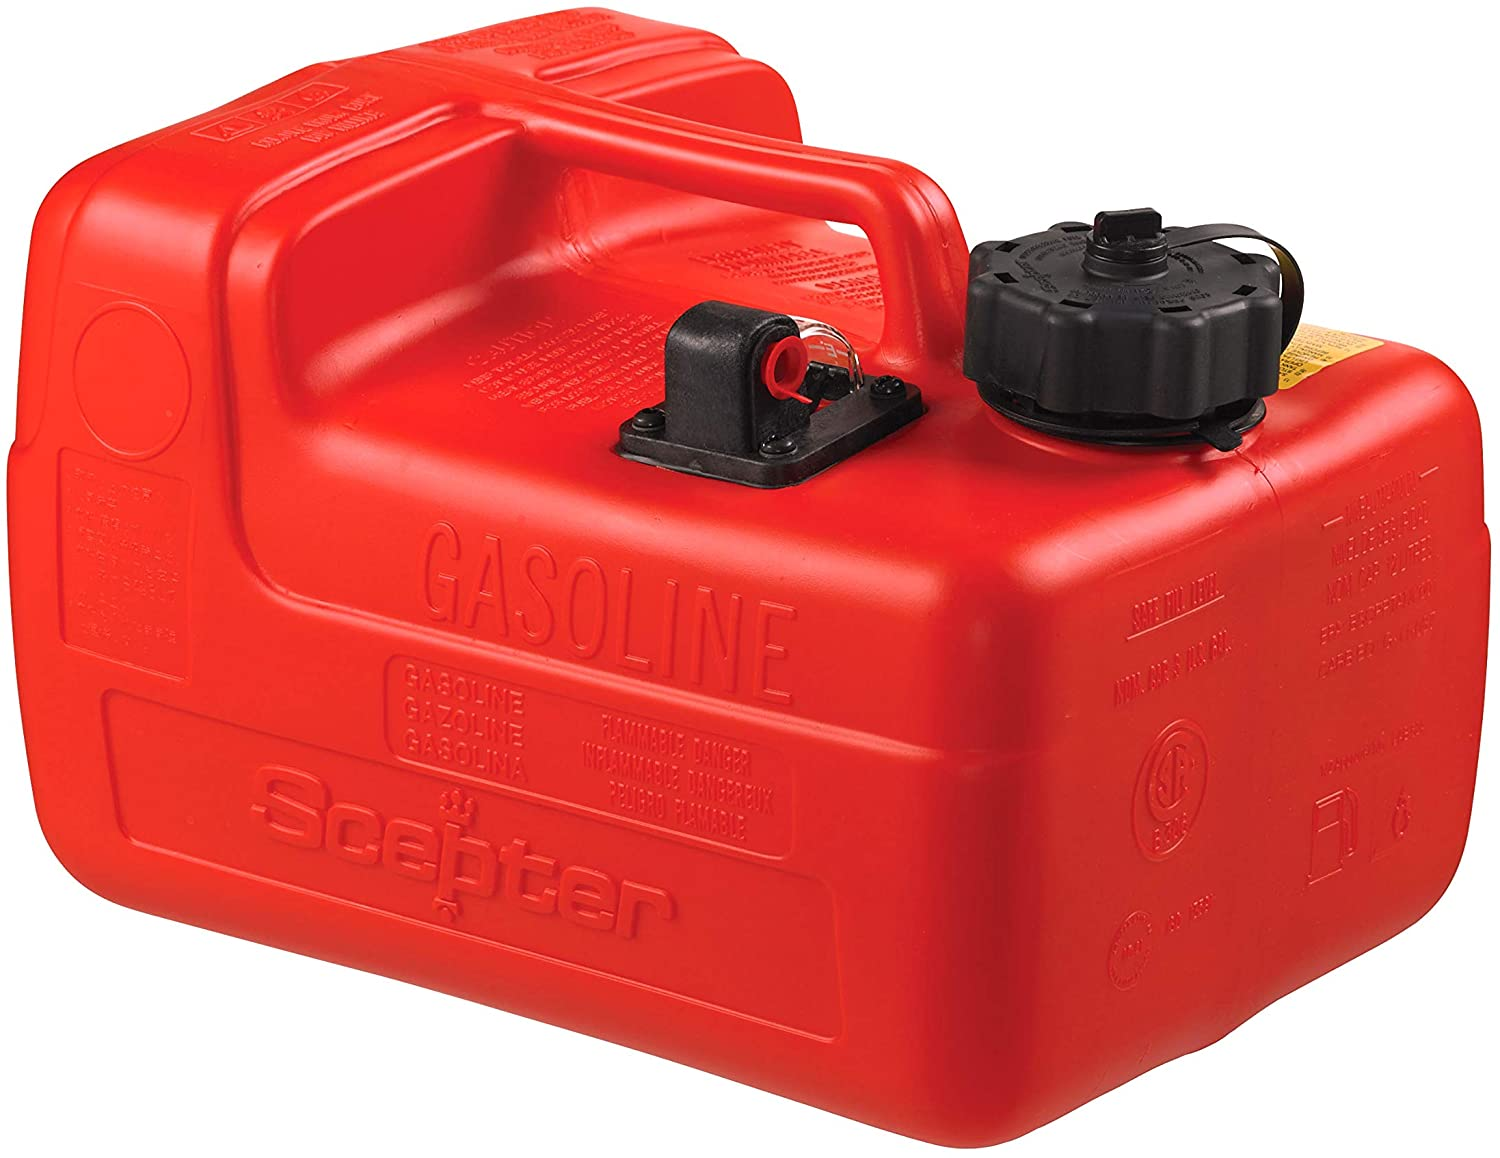 Scepter Marine OEM Portable Fuel Tank